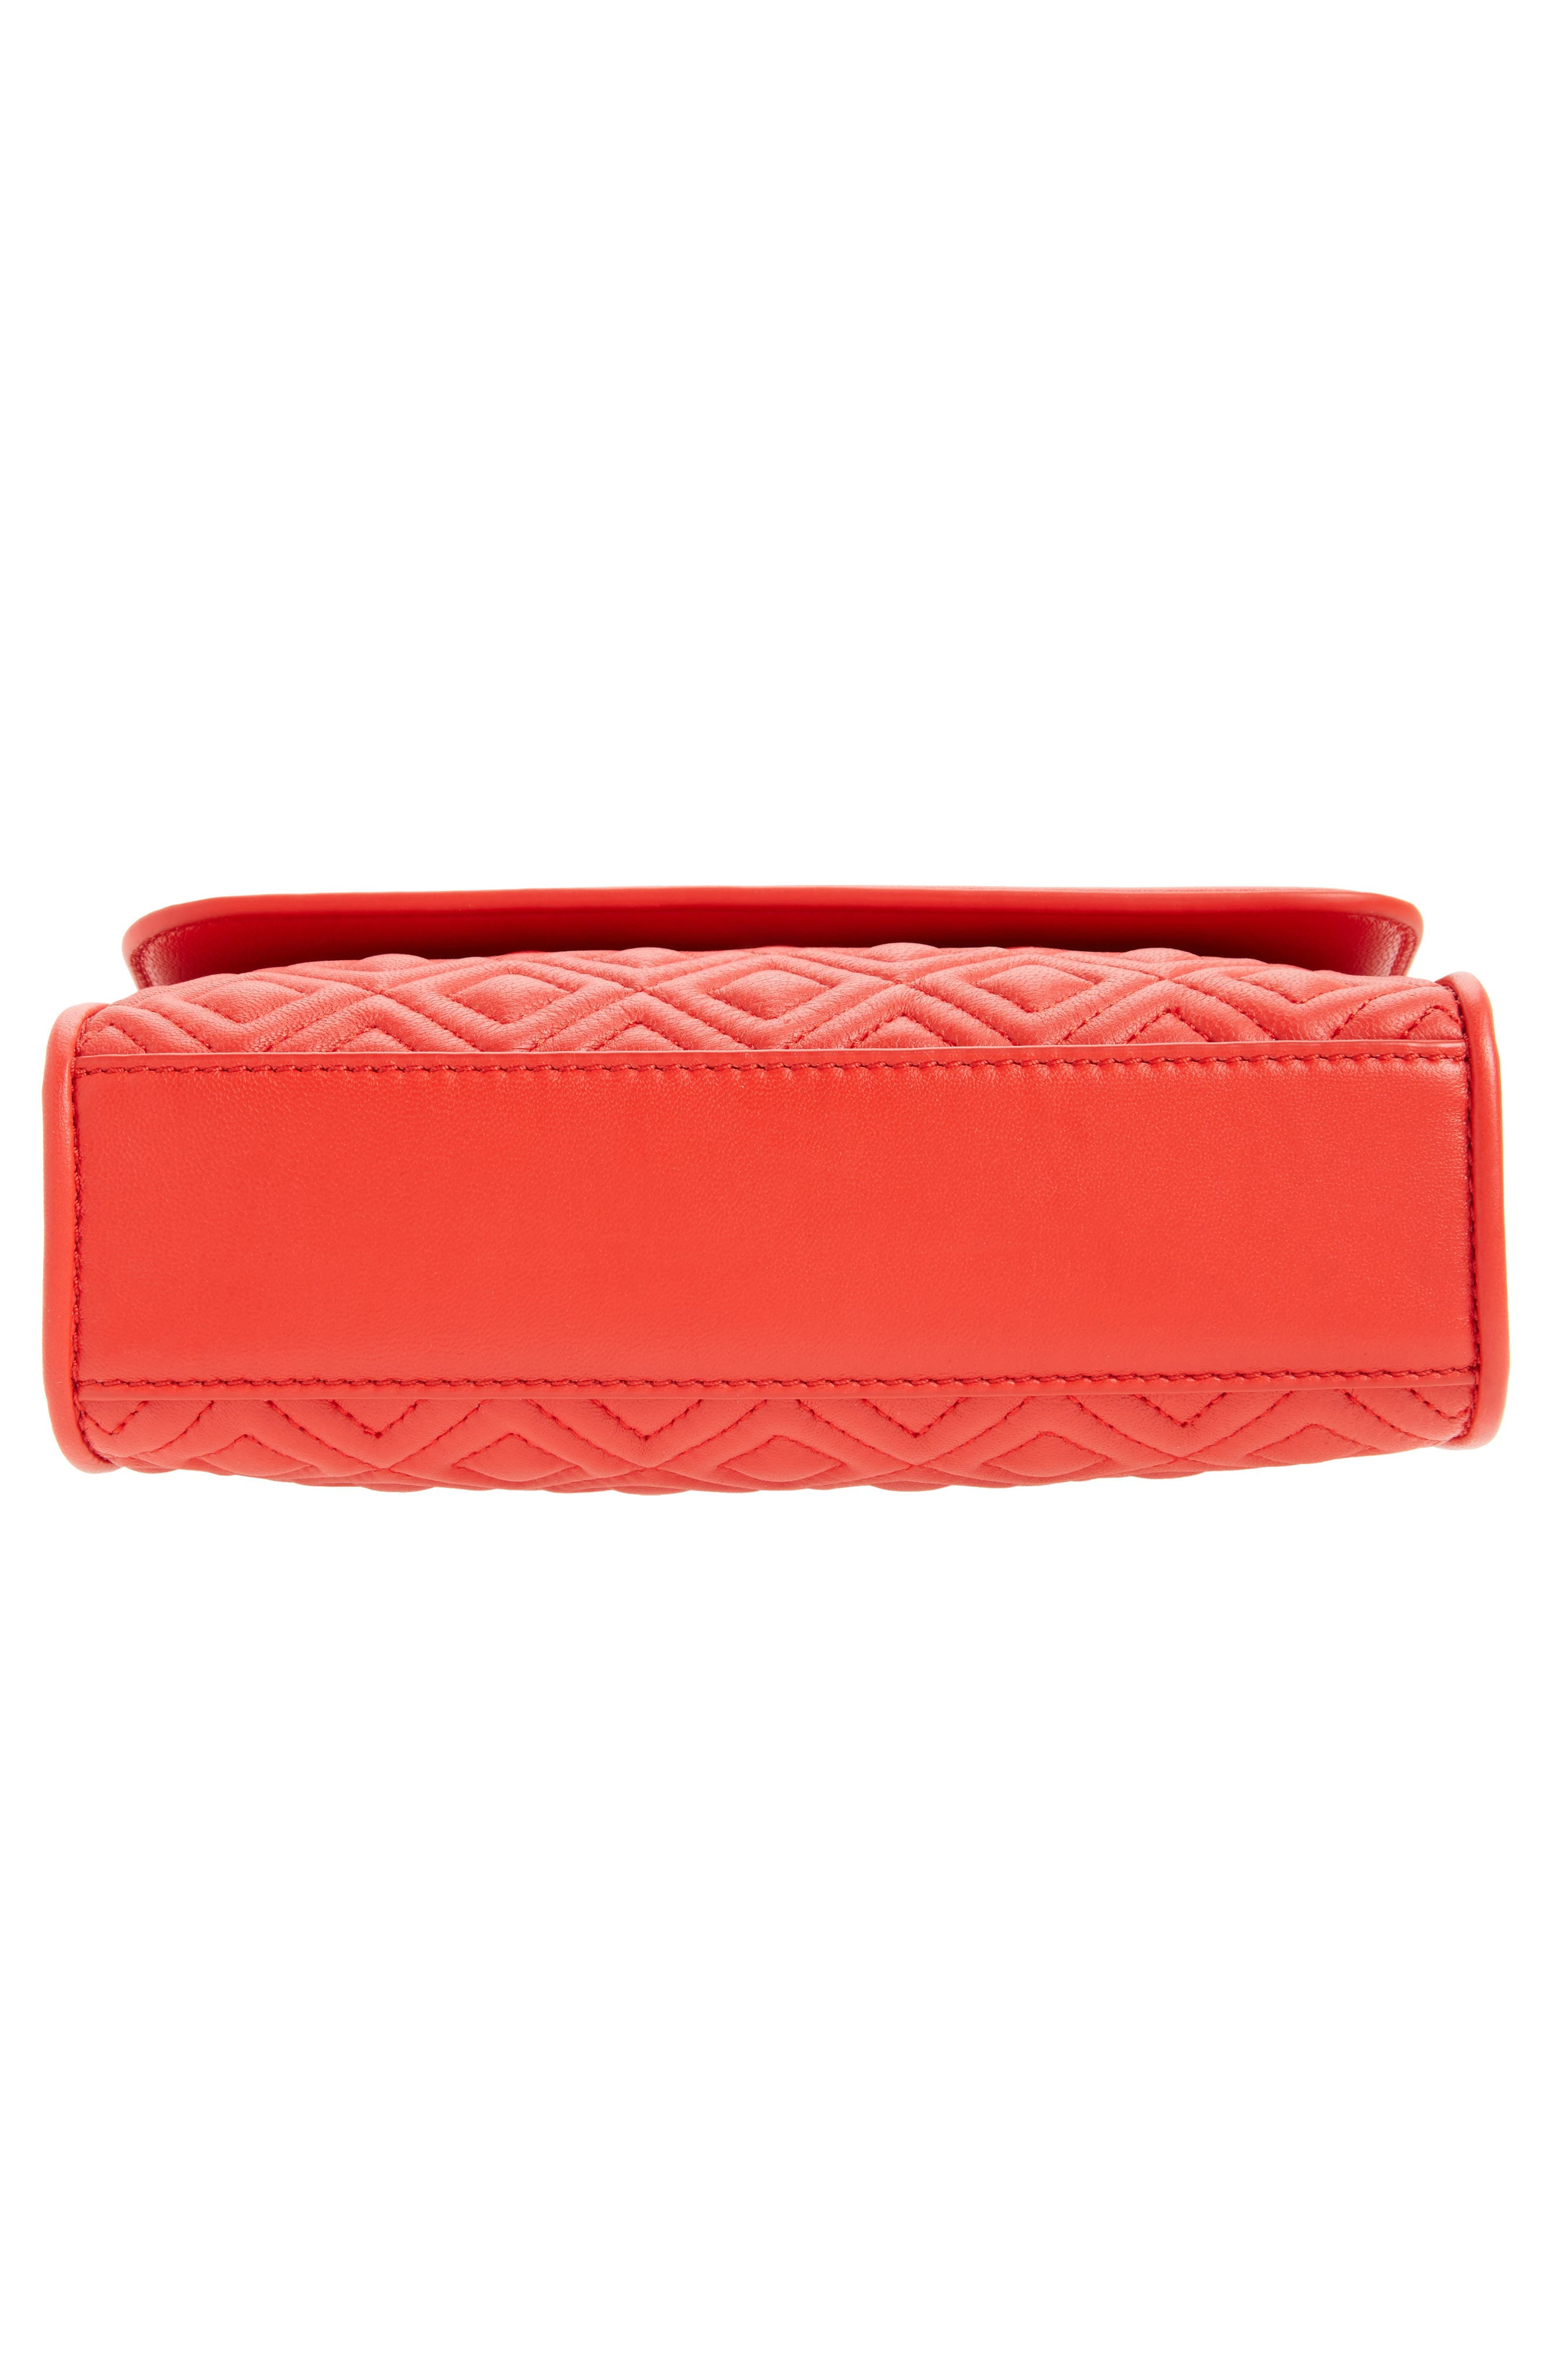 'Small Fleming' Quilted Leather Shoulder Bag,                             Alternate thumbnail 24, color,